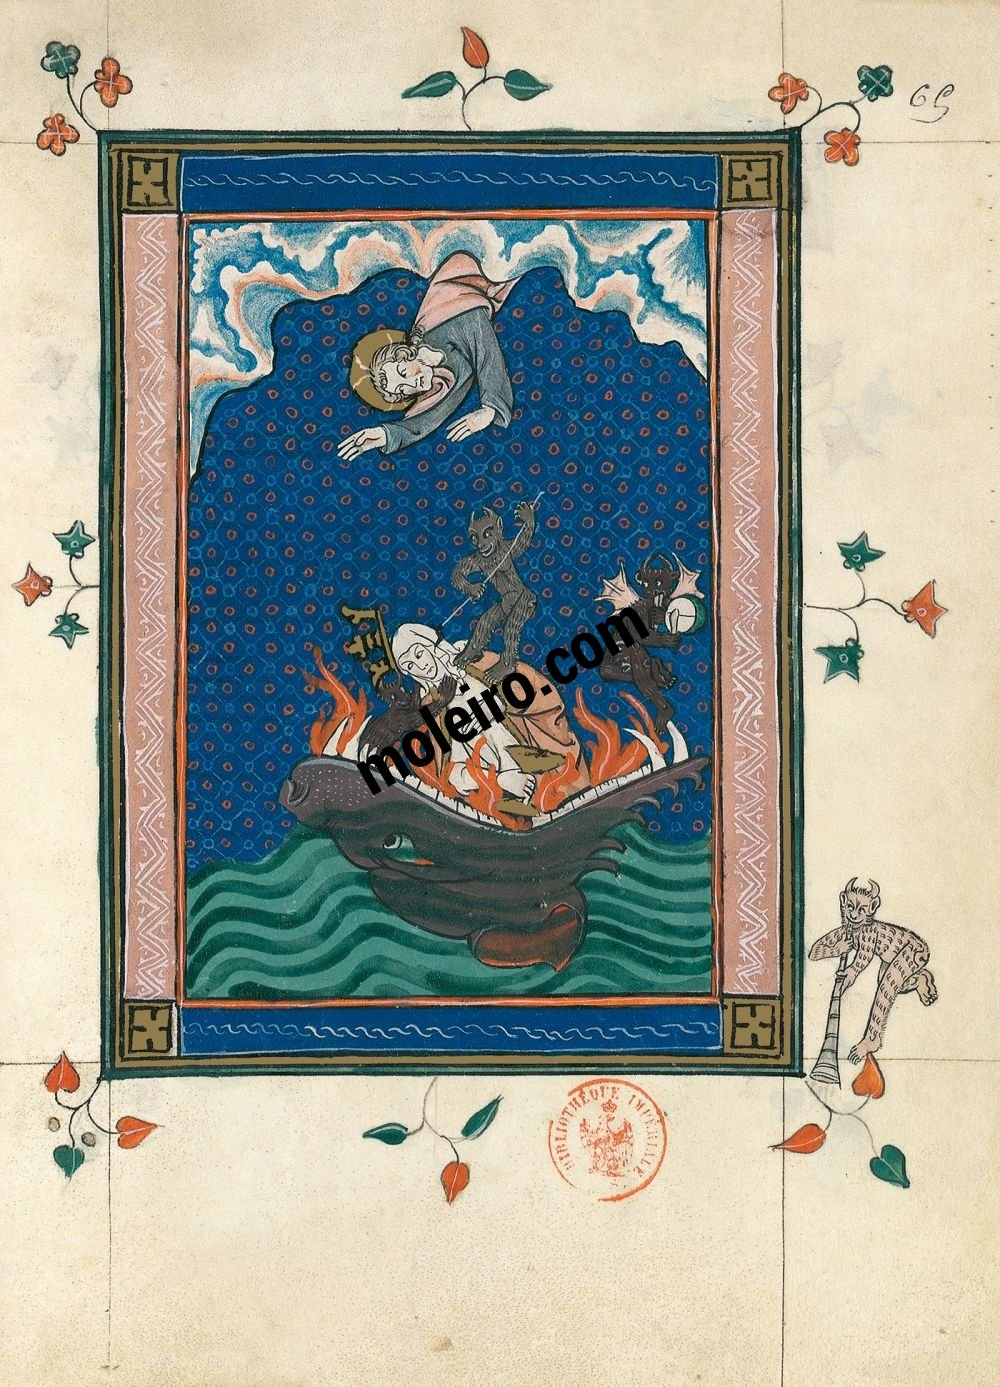 The Apocalypse of 1313 f. 65r, Babylon cast into Hell (Ap. 18, 22b-24)